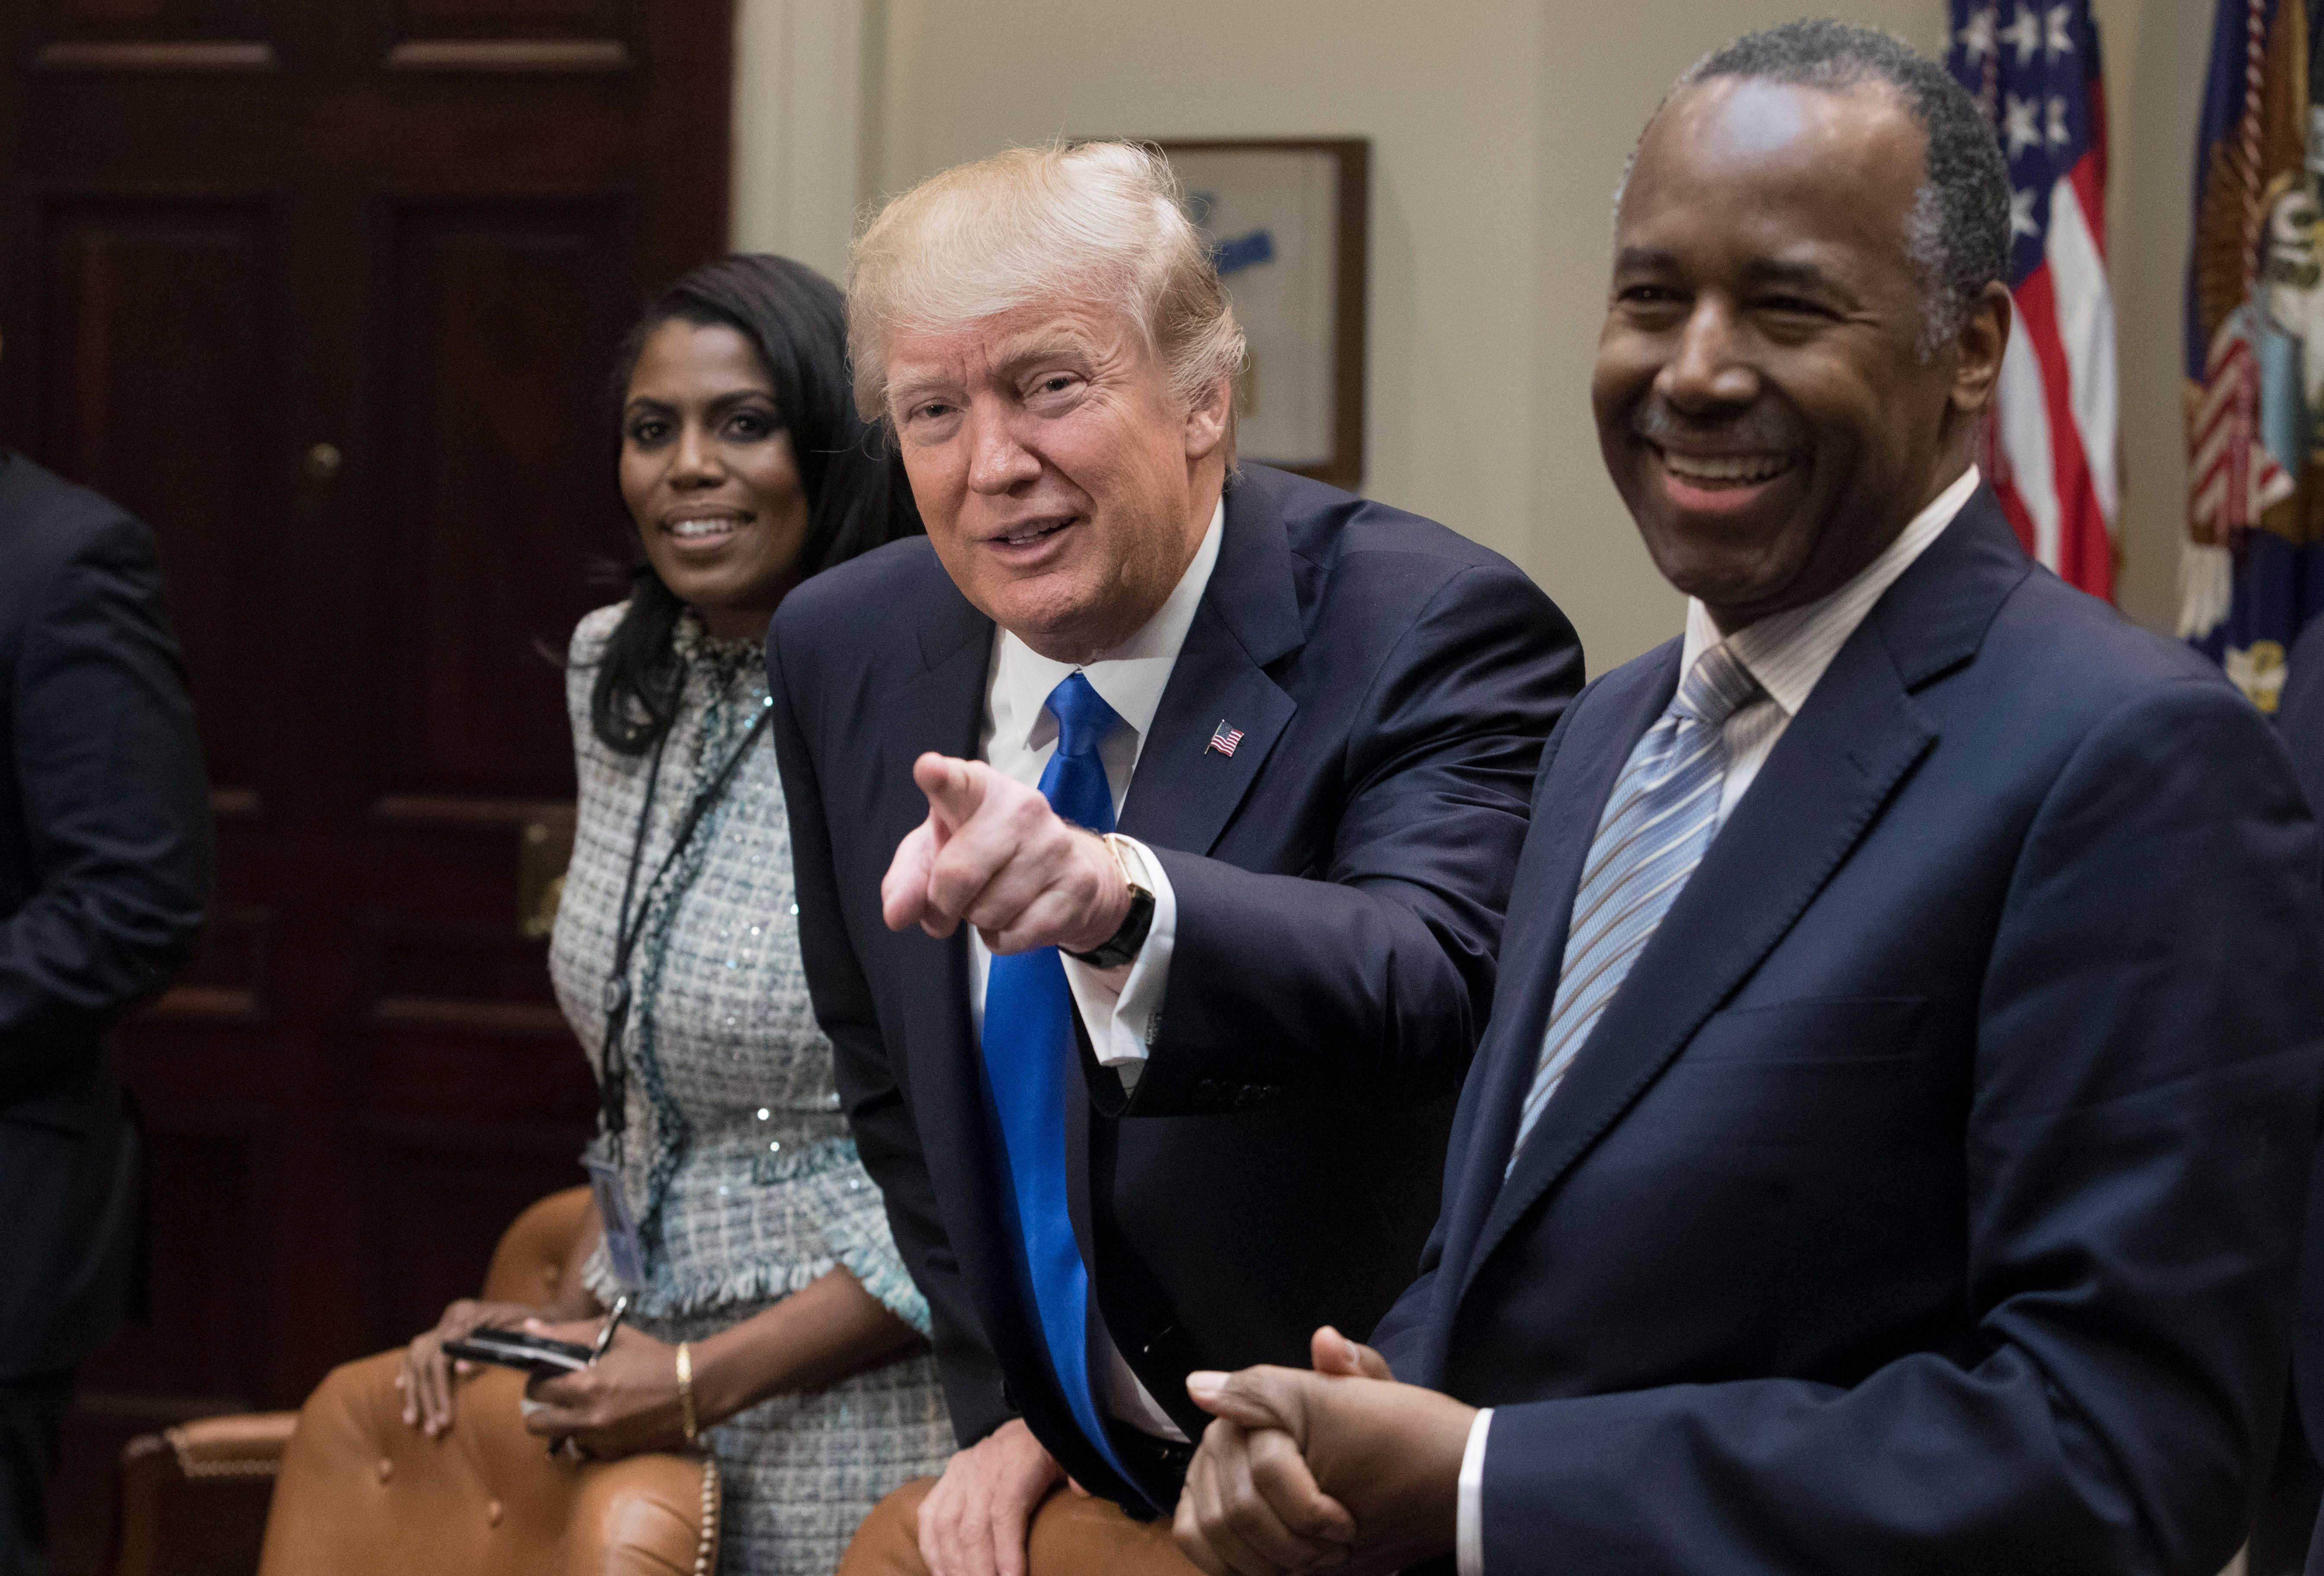 Omarosa Claims Trump Has 'Mental Decline That Could Not Be Denied'